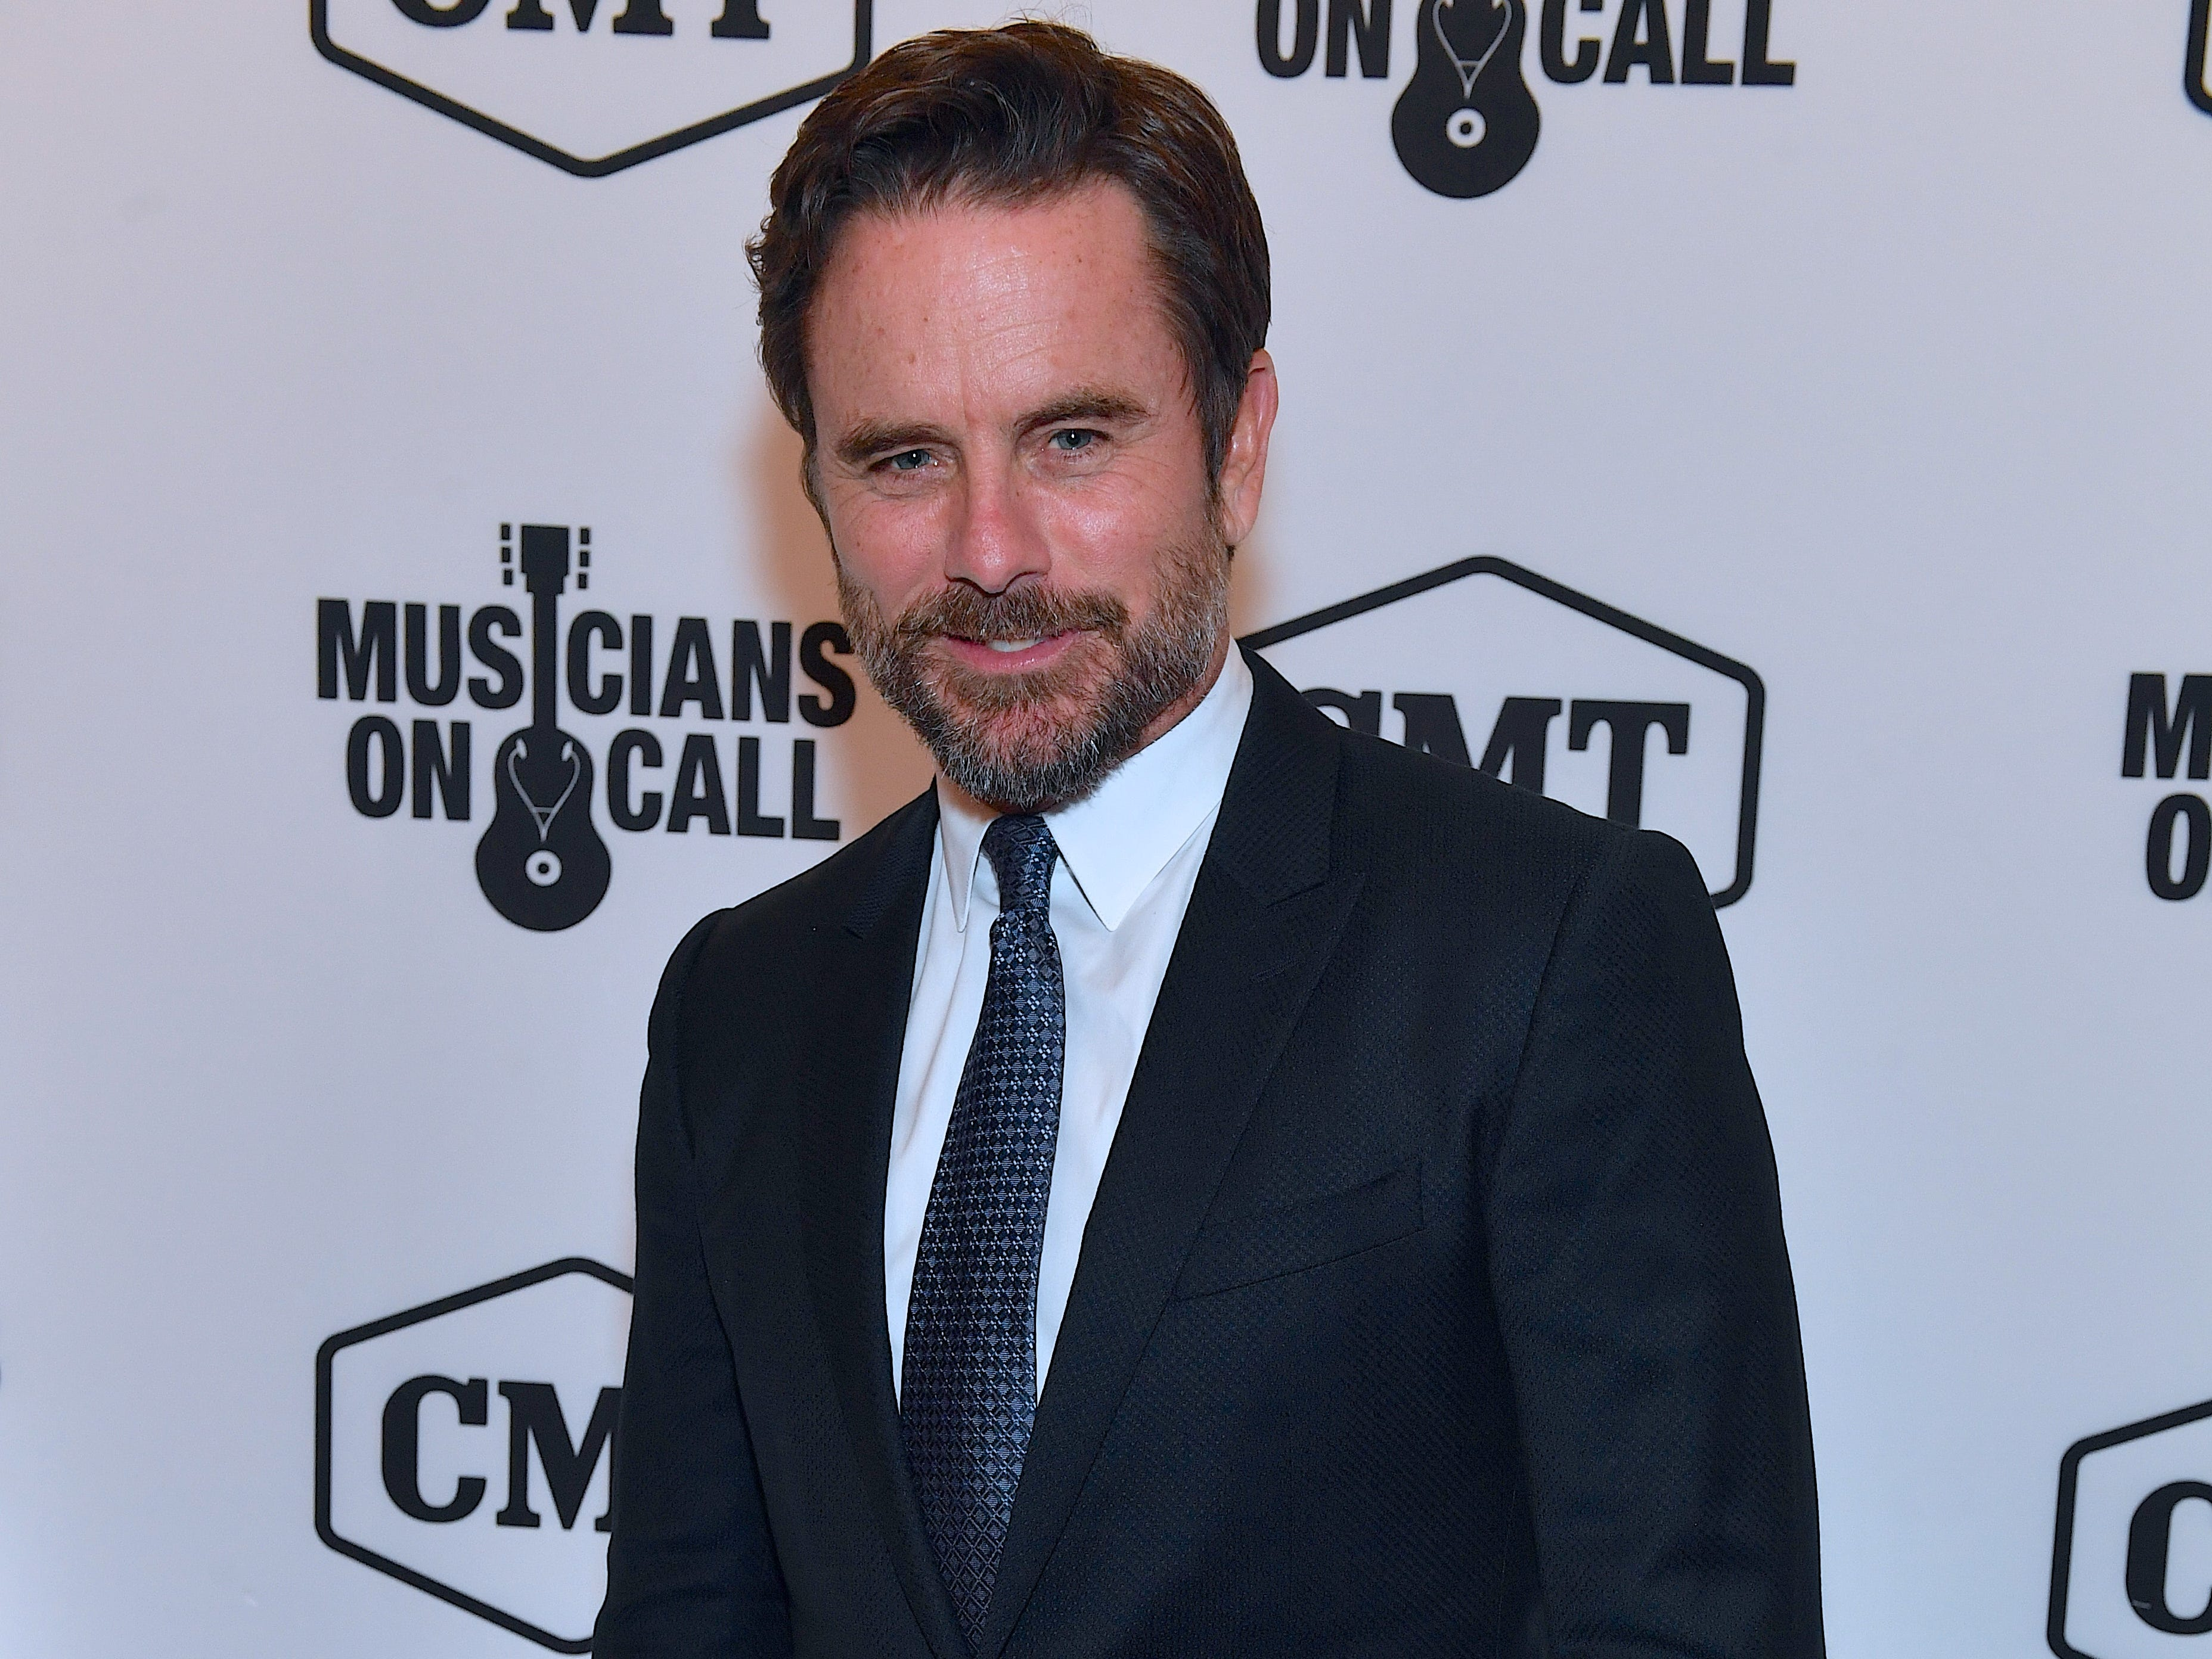 Recording Artist and actor Charles Esten arrives at CMA Theater at the Country Music Hall of Fame and Museum on Oct. 10, 2018, in Nashville, Tennessee.